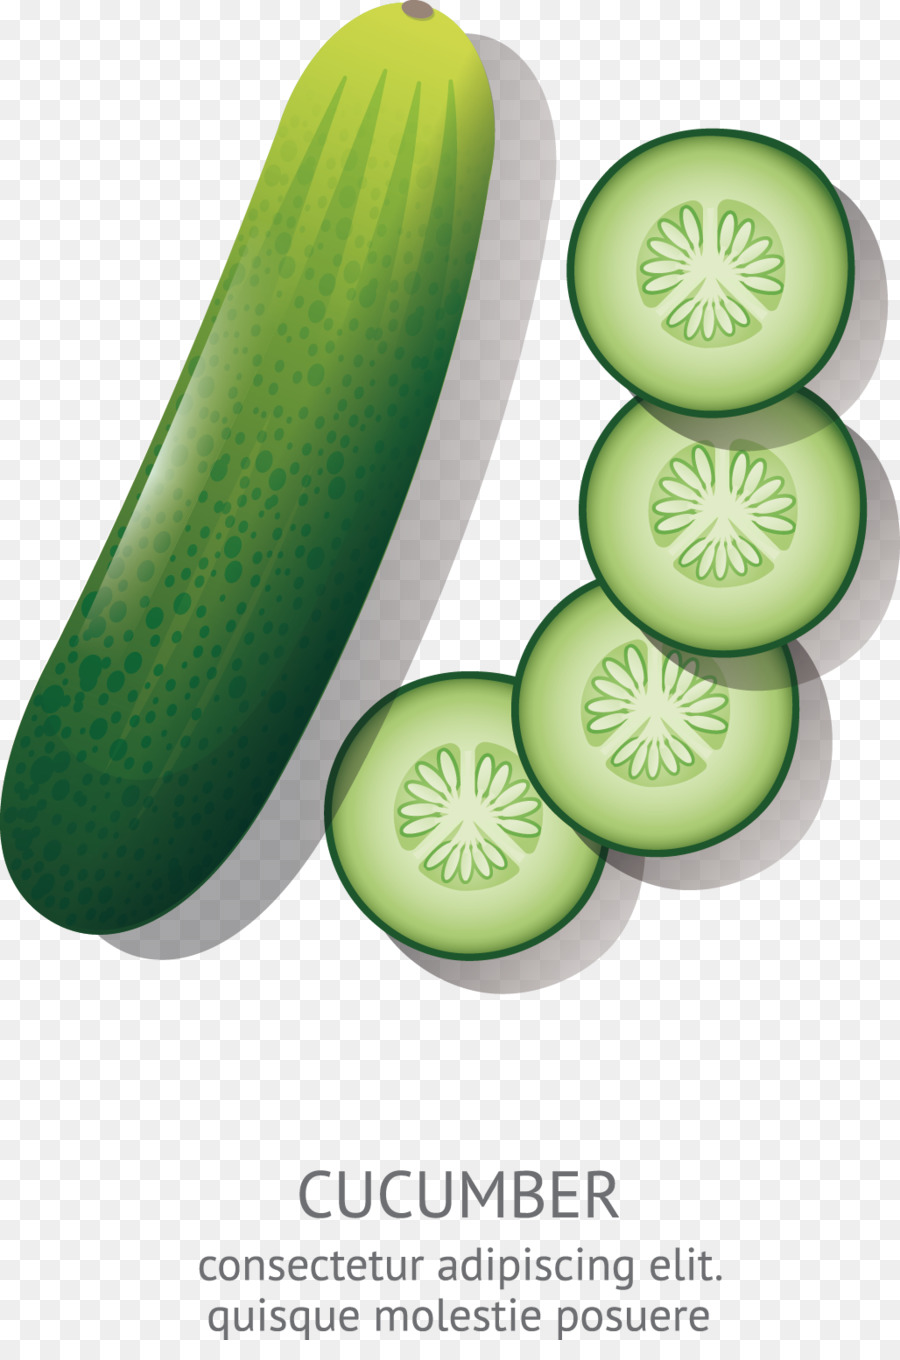 Cucumber Drawing at GetDrawings.com | Free for personal use Cucumber ... for Drawing Cucumber  56mzq